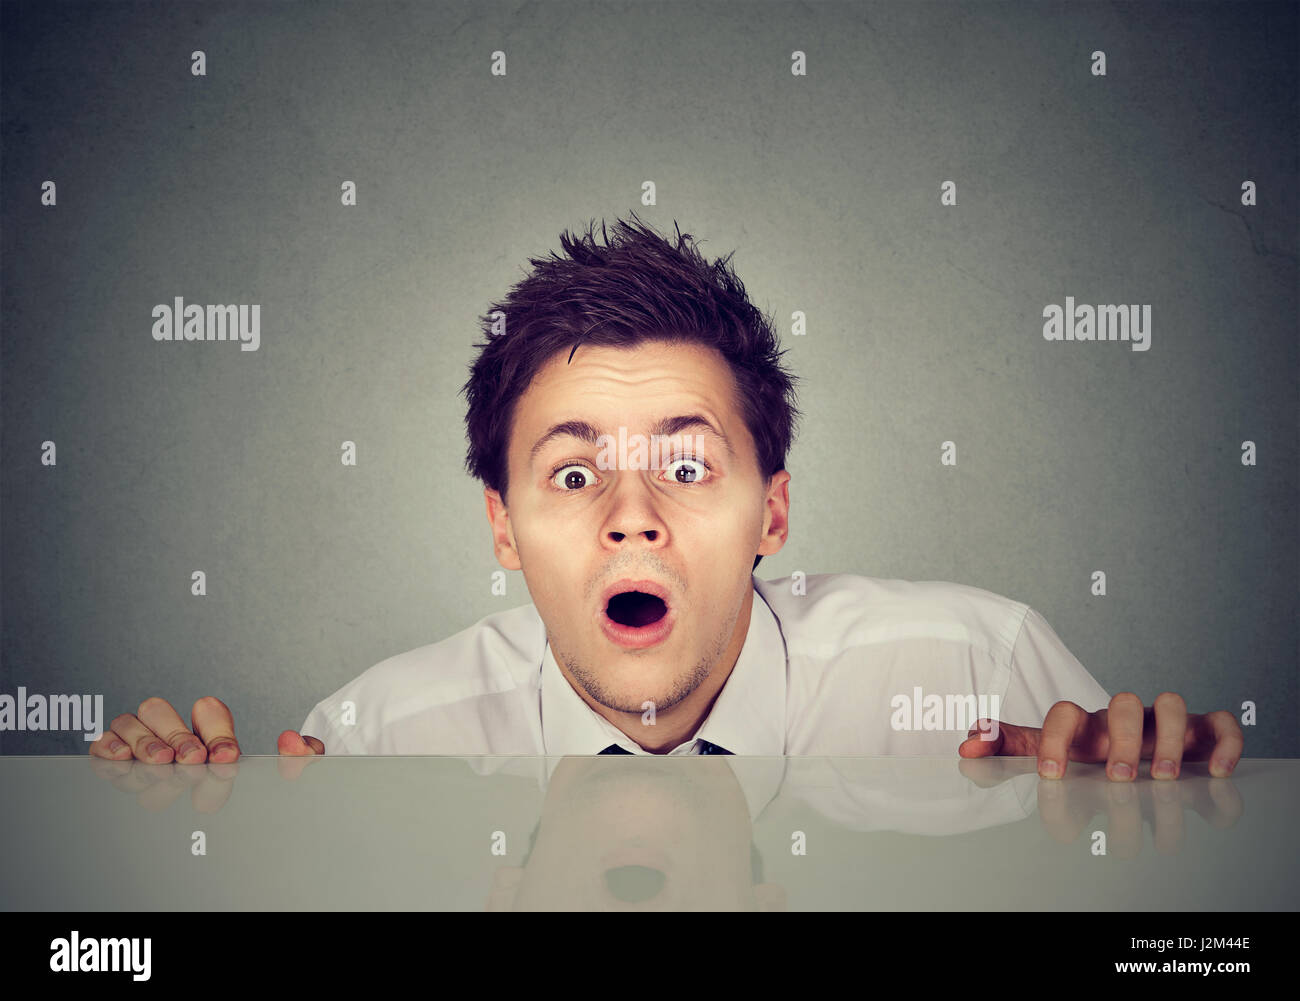 worried young man looks at camera - Stock Image